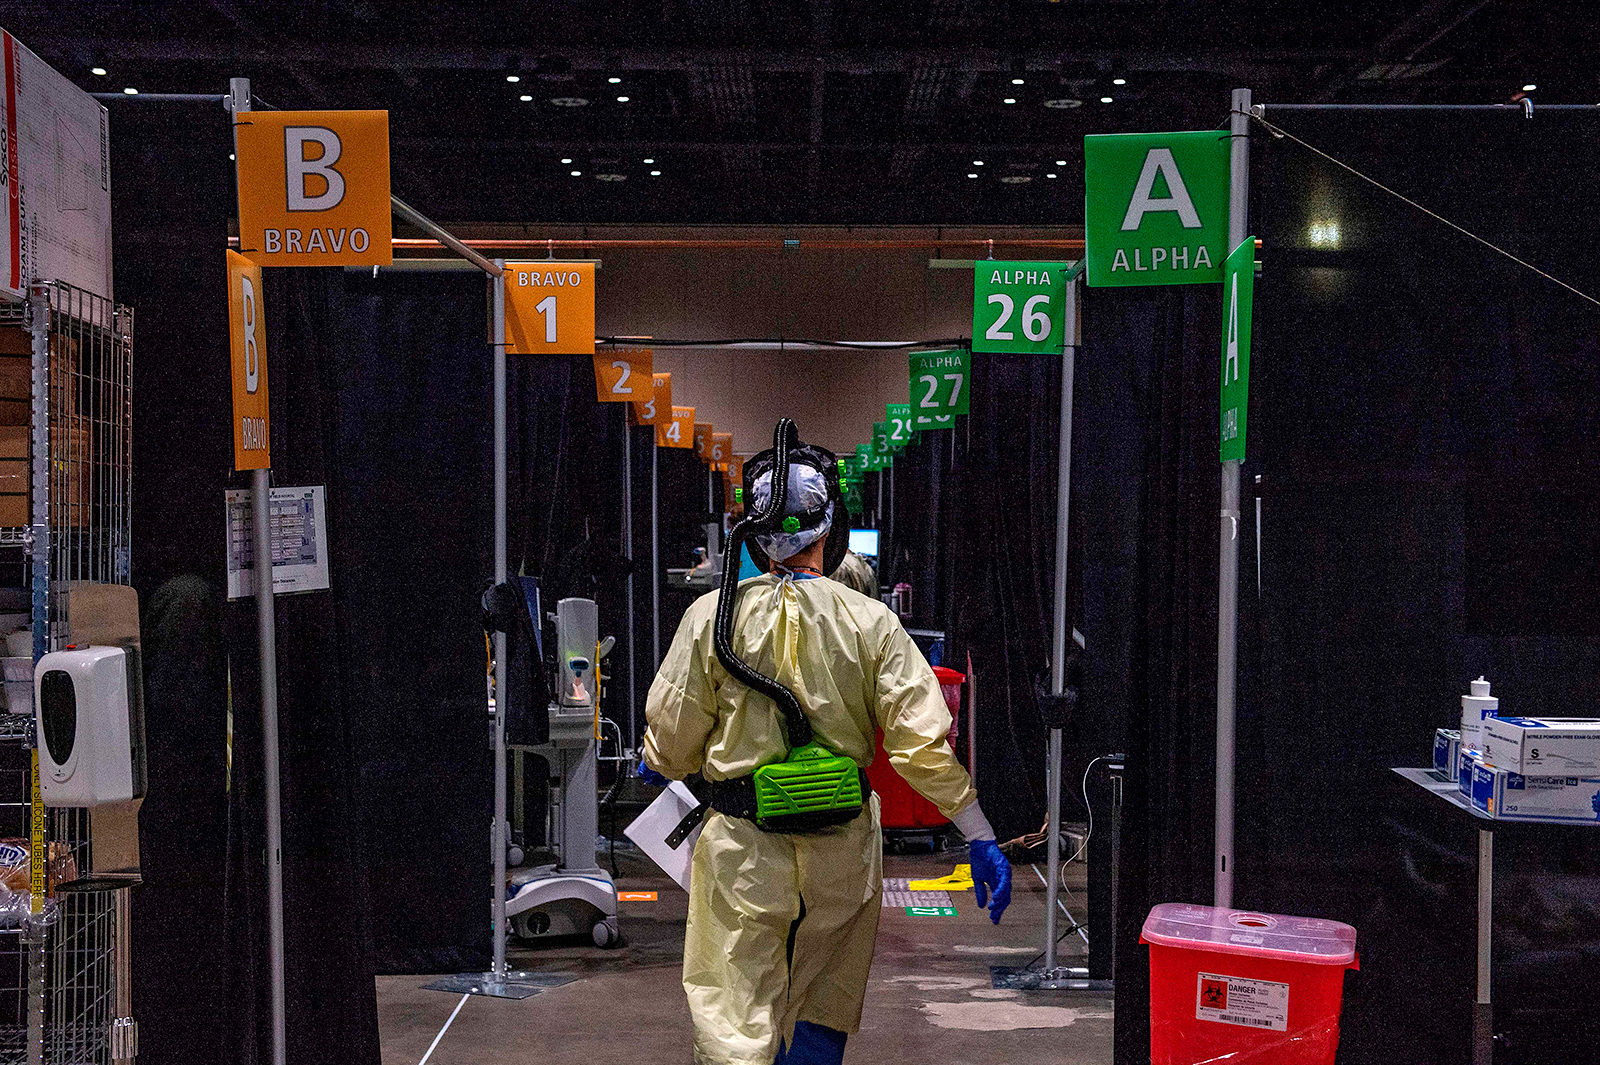 Inside the hot zone, medical staff monitor and treat sick patients infected with the Covid-19 virus at the UMASS Memorial DCU Center Field Hospital in Worcester, Massachusetts, on January 13